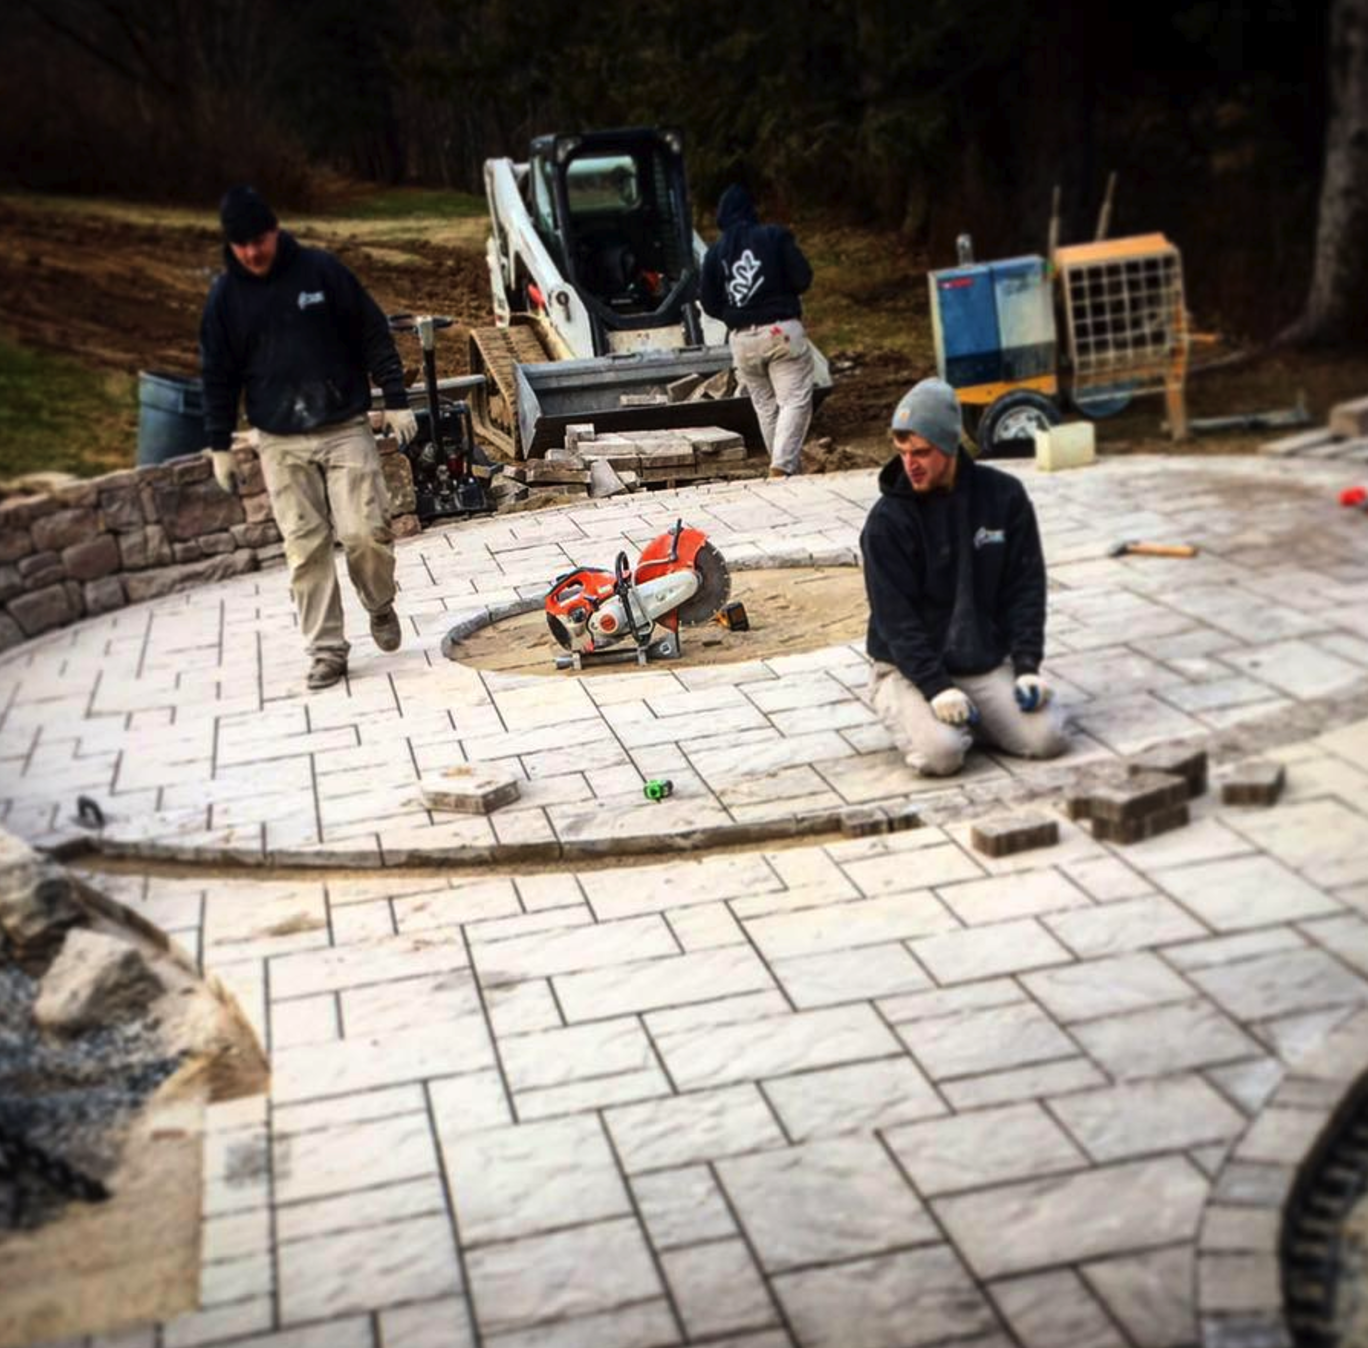 Landscape contractor in Reading, PA with open positions for proffesionals in landscape design, landscape maintenance, including lawn care